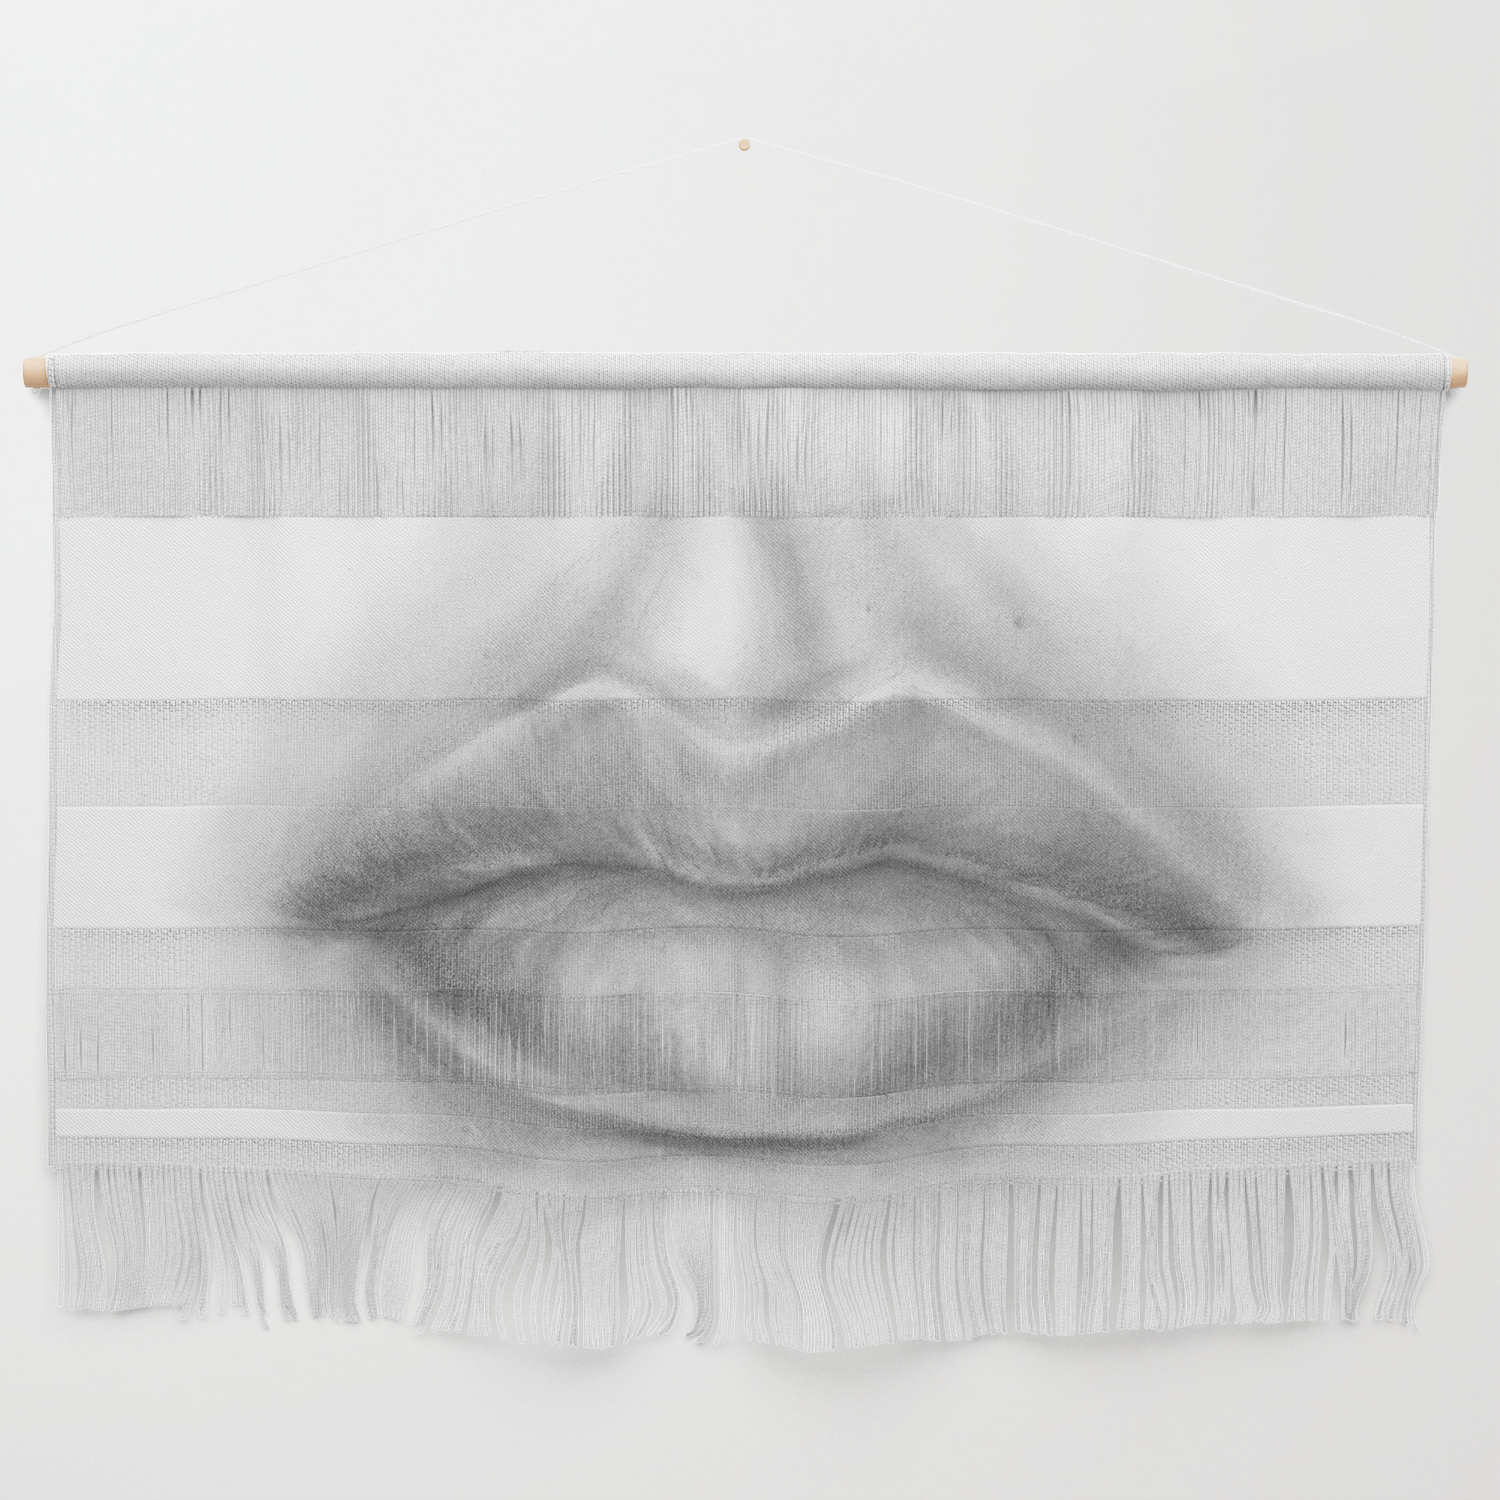 Pouty sexy lips pencil art graphite drawing sexuality face wall hanging by magdaopoka